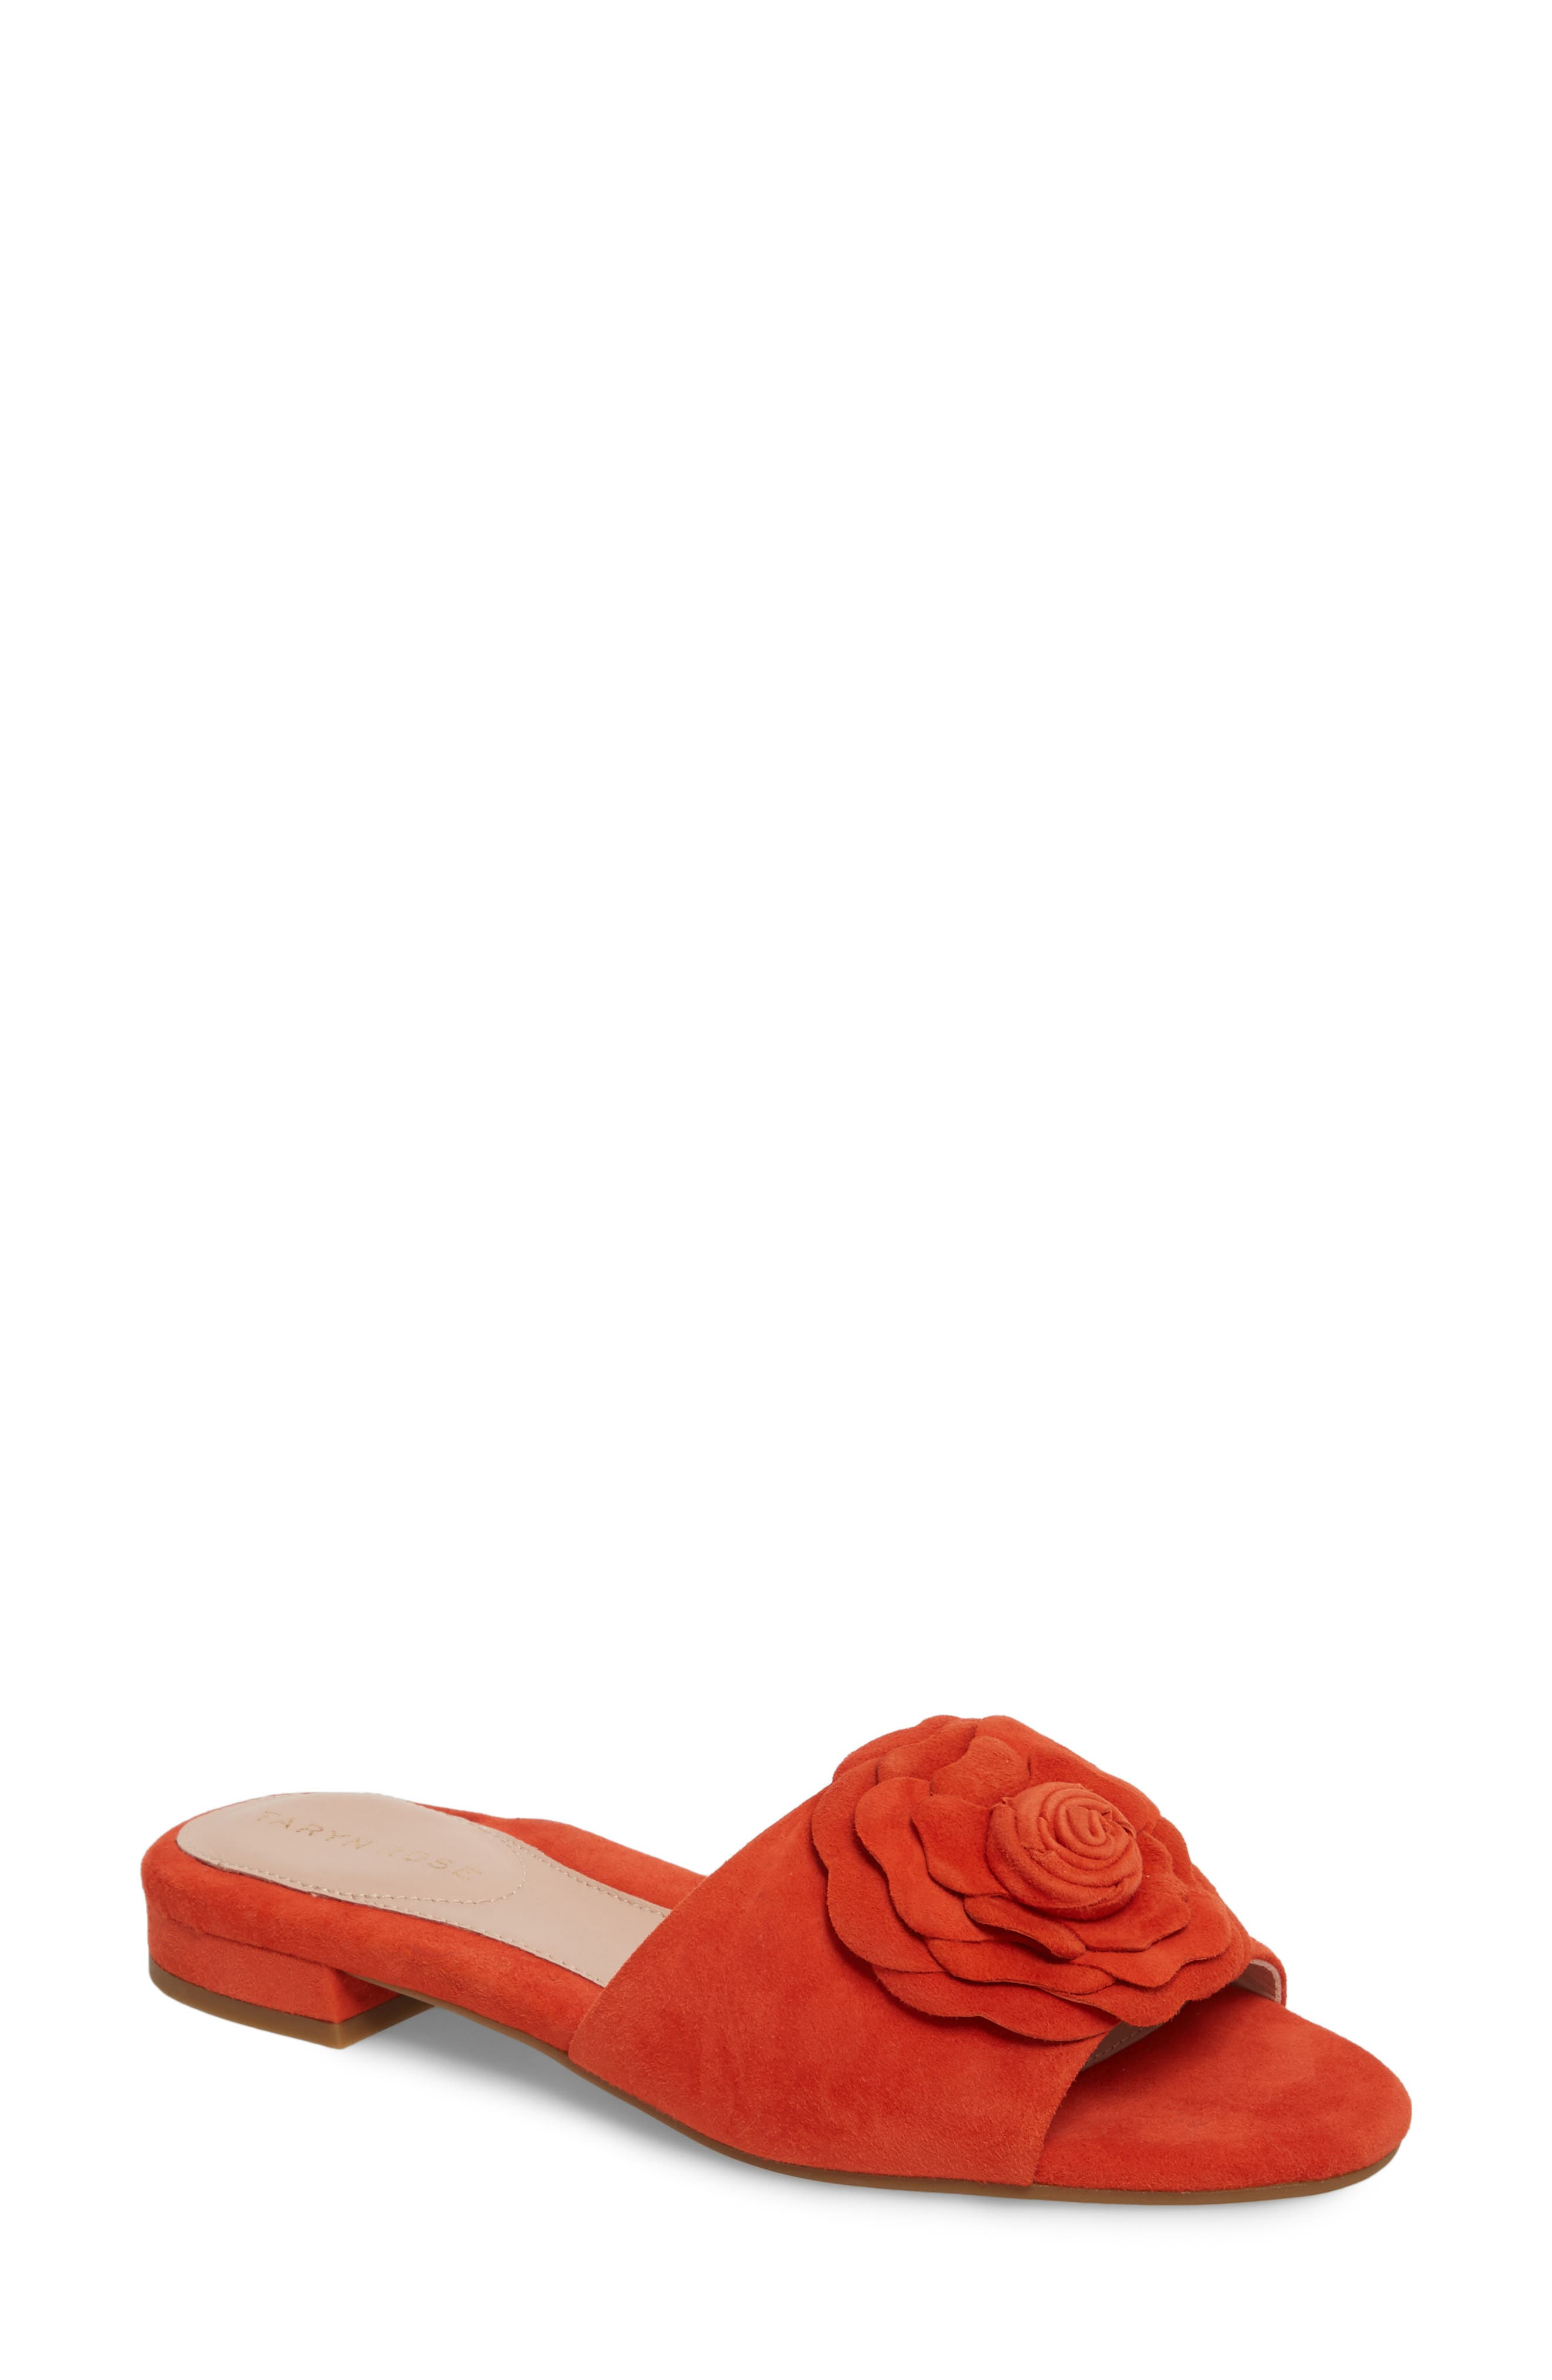 Violet Flower Slide Sandal,                             Main thumbnail 1, color,                             Poppy Suede